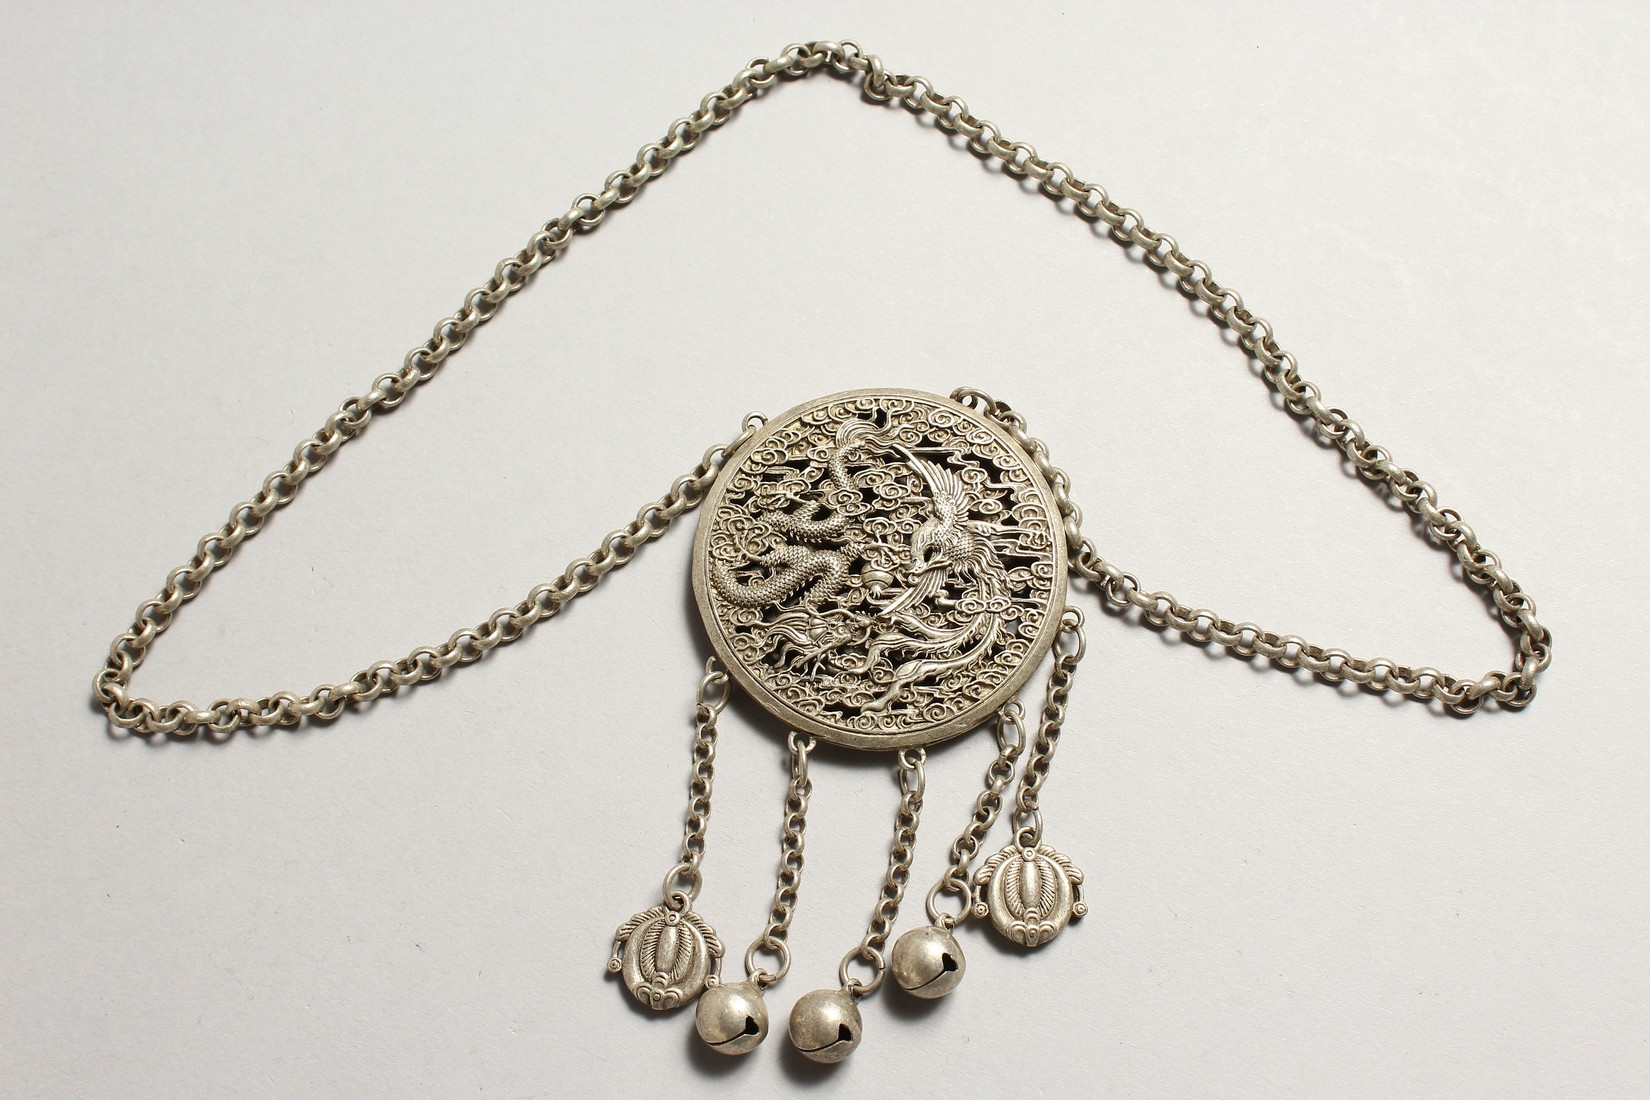 A CHINESE SILVER YIN-YANG PENDANT on a chain with dragon and phoenix. - Image 2 of 4